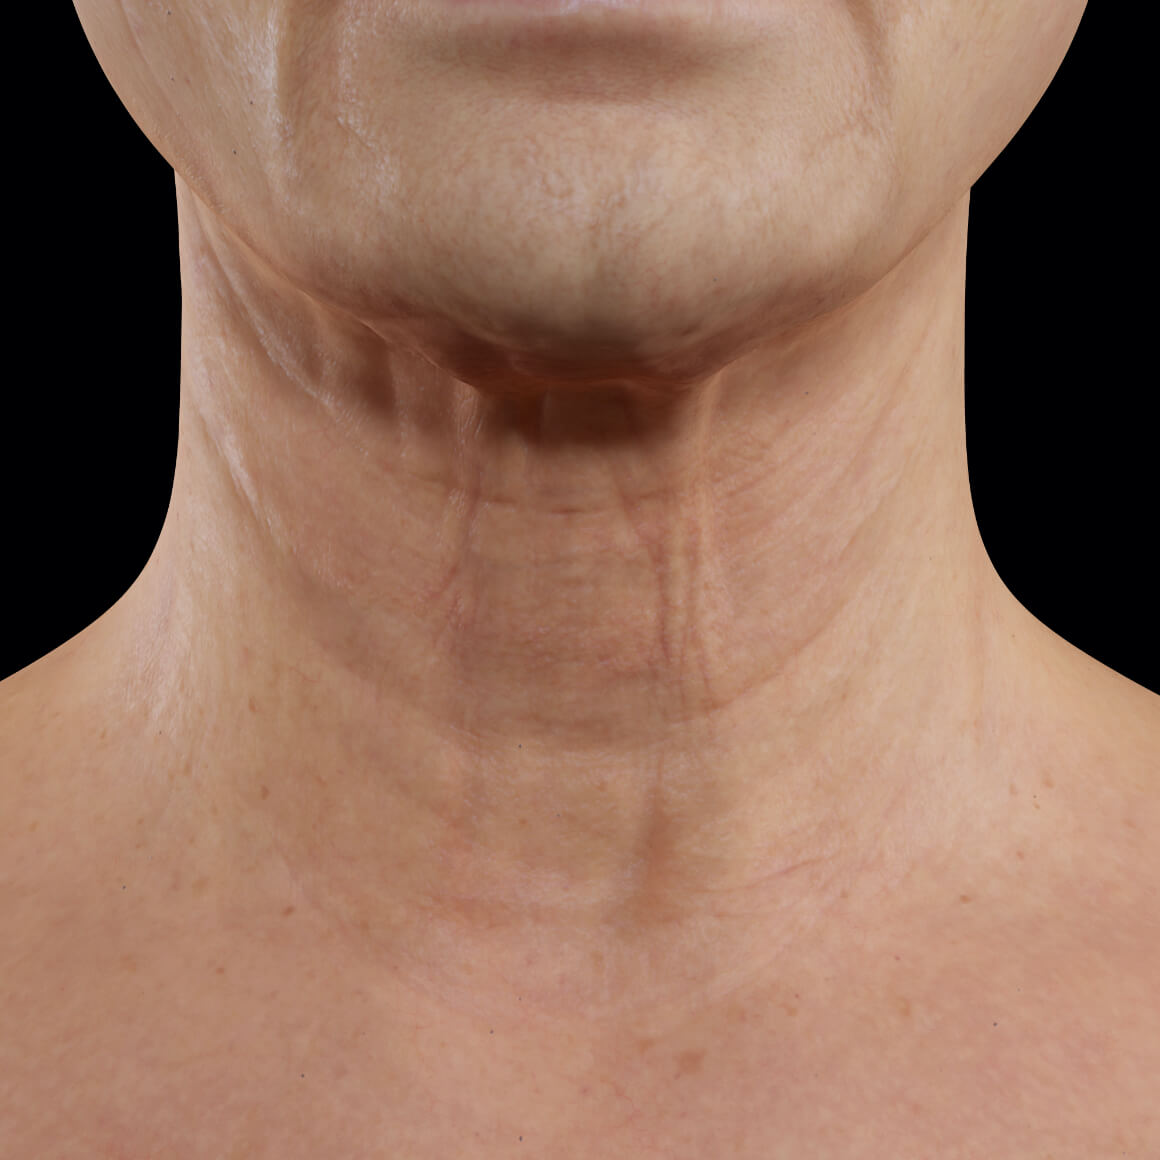 Clinique Chloé female patient facing front after fractional laser treatments for neck skin tightening